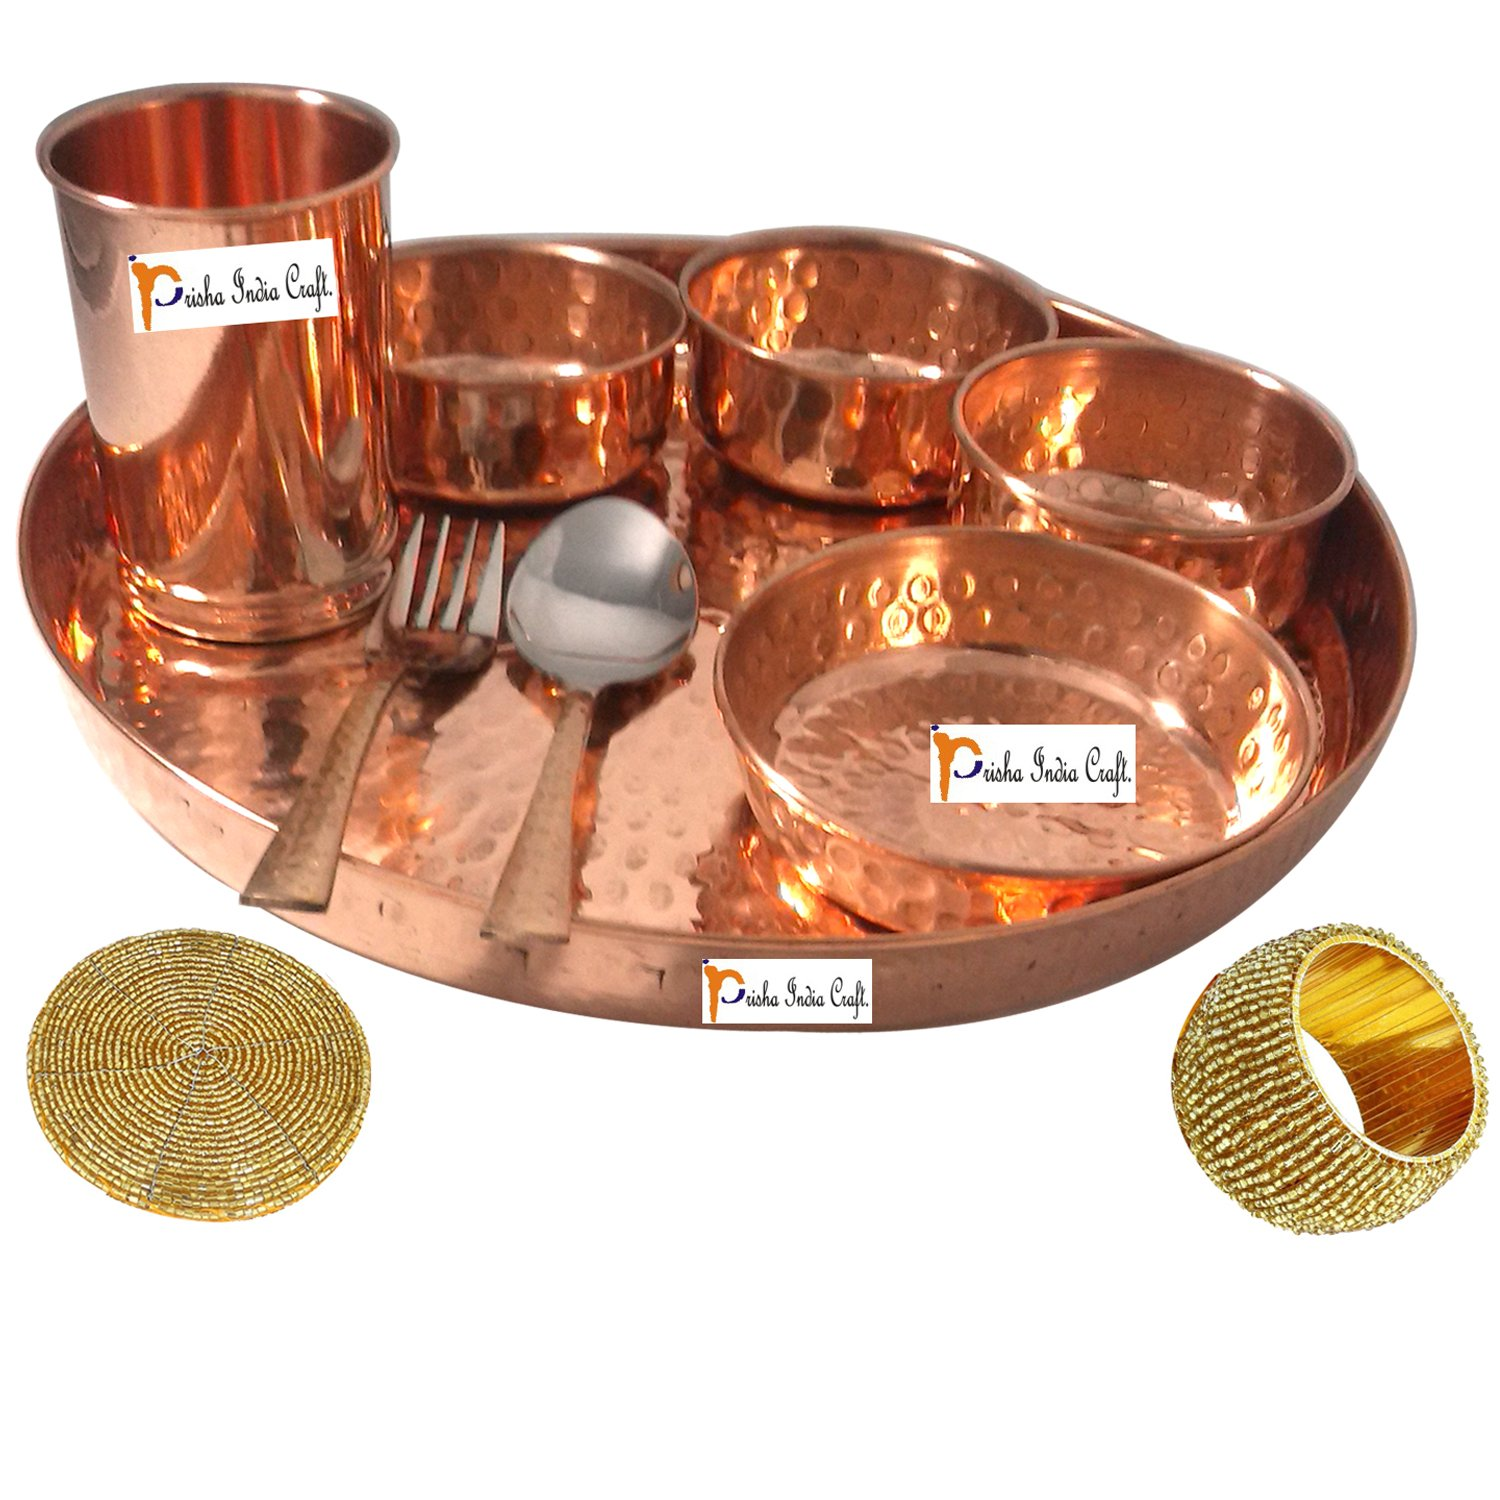 Set of 6 Prisha India Craft Handmade Indian Dinnerware Pure Copper Thali Set Dia 12'' Traditional Dinner Set of Plate, Bowl, Spoons, Glass with Napkin ring and Coaster - Christmas Gift by Prisha India Craft (Image #3)